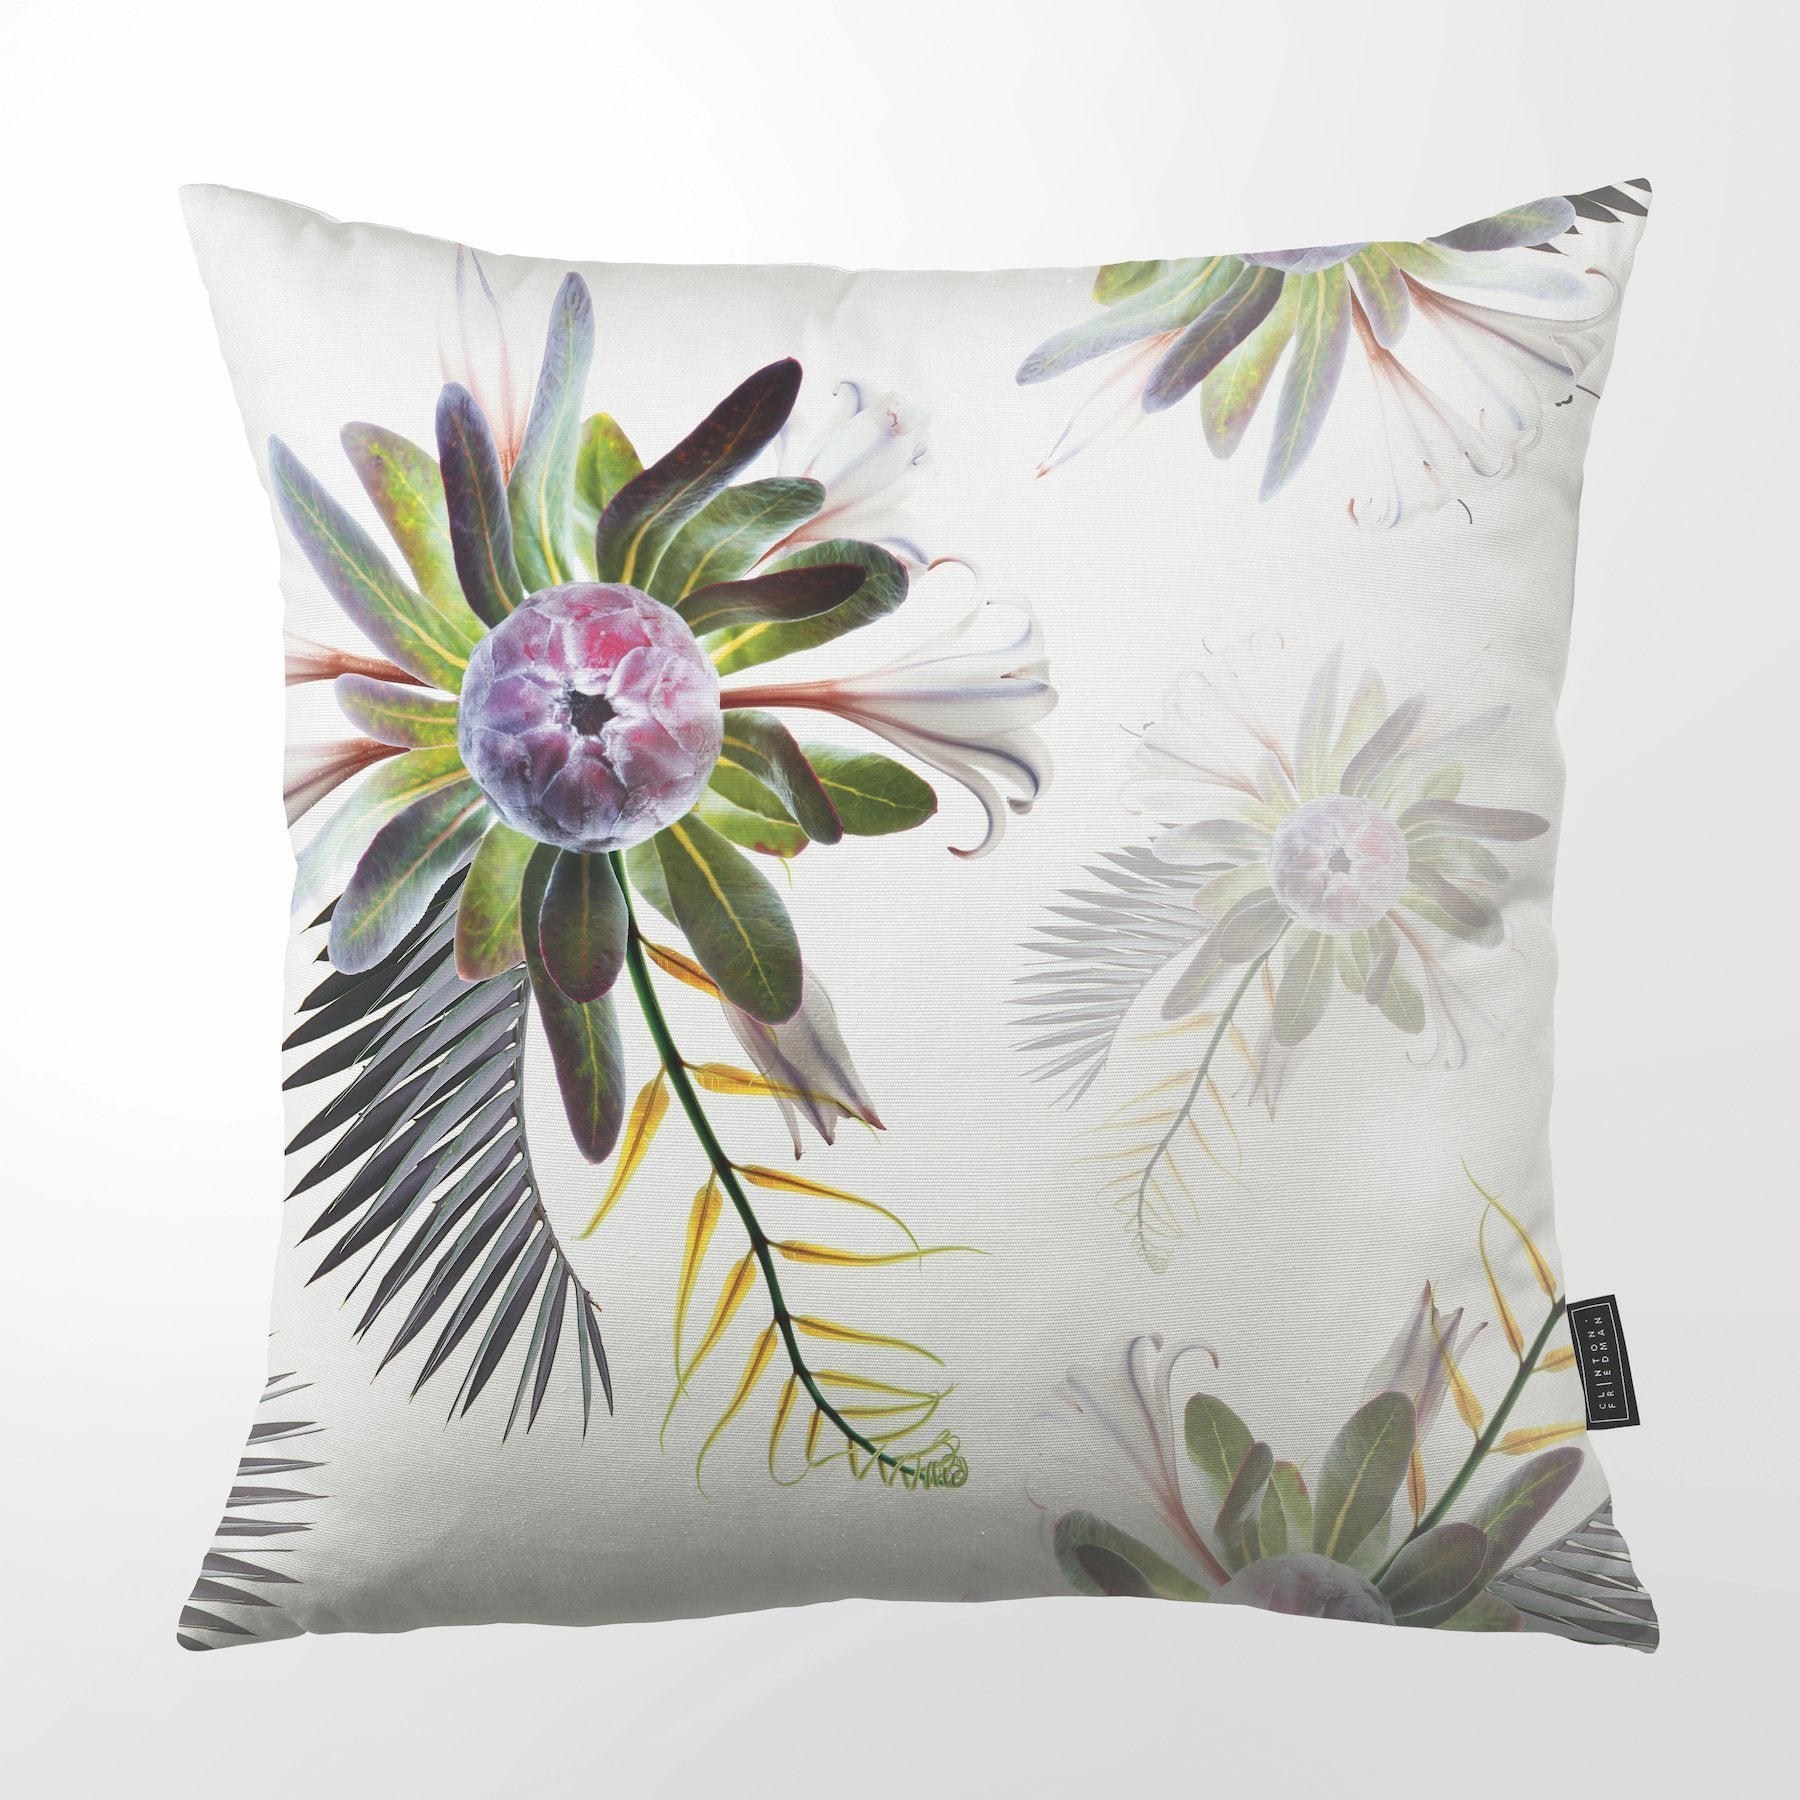 CLINTON FRIEDMAN USA NEW YORK INFLORESCENCE COLLECTION 2 THROW PILLOW